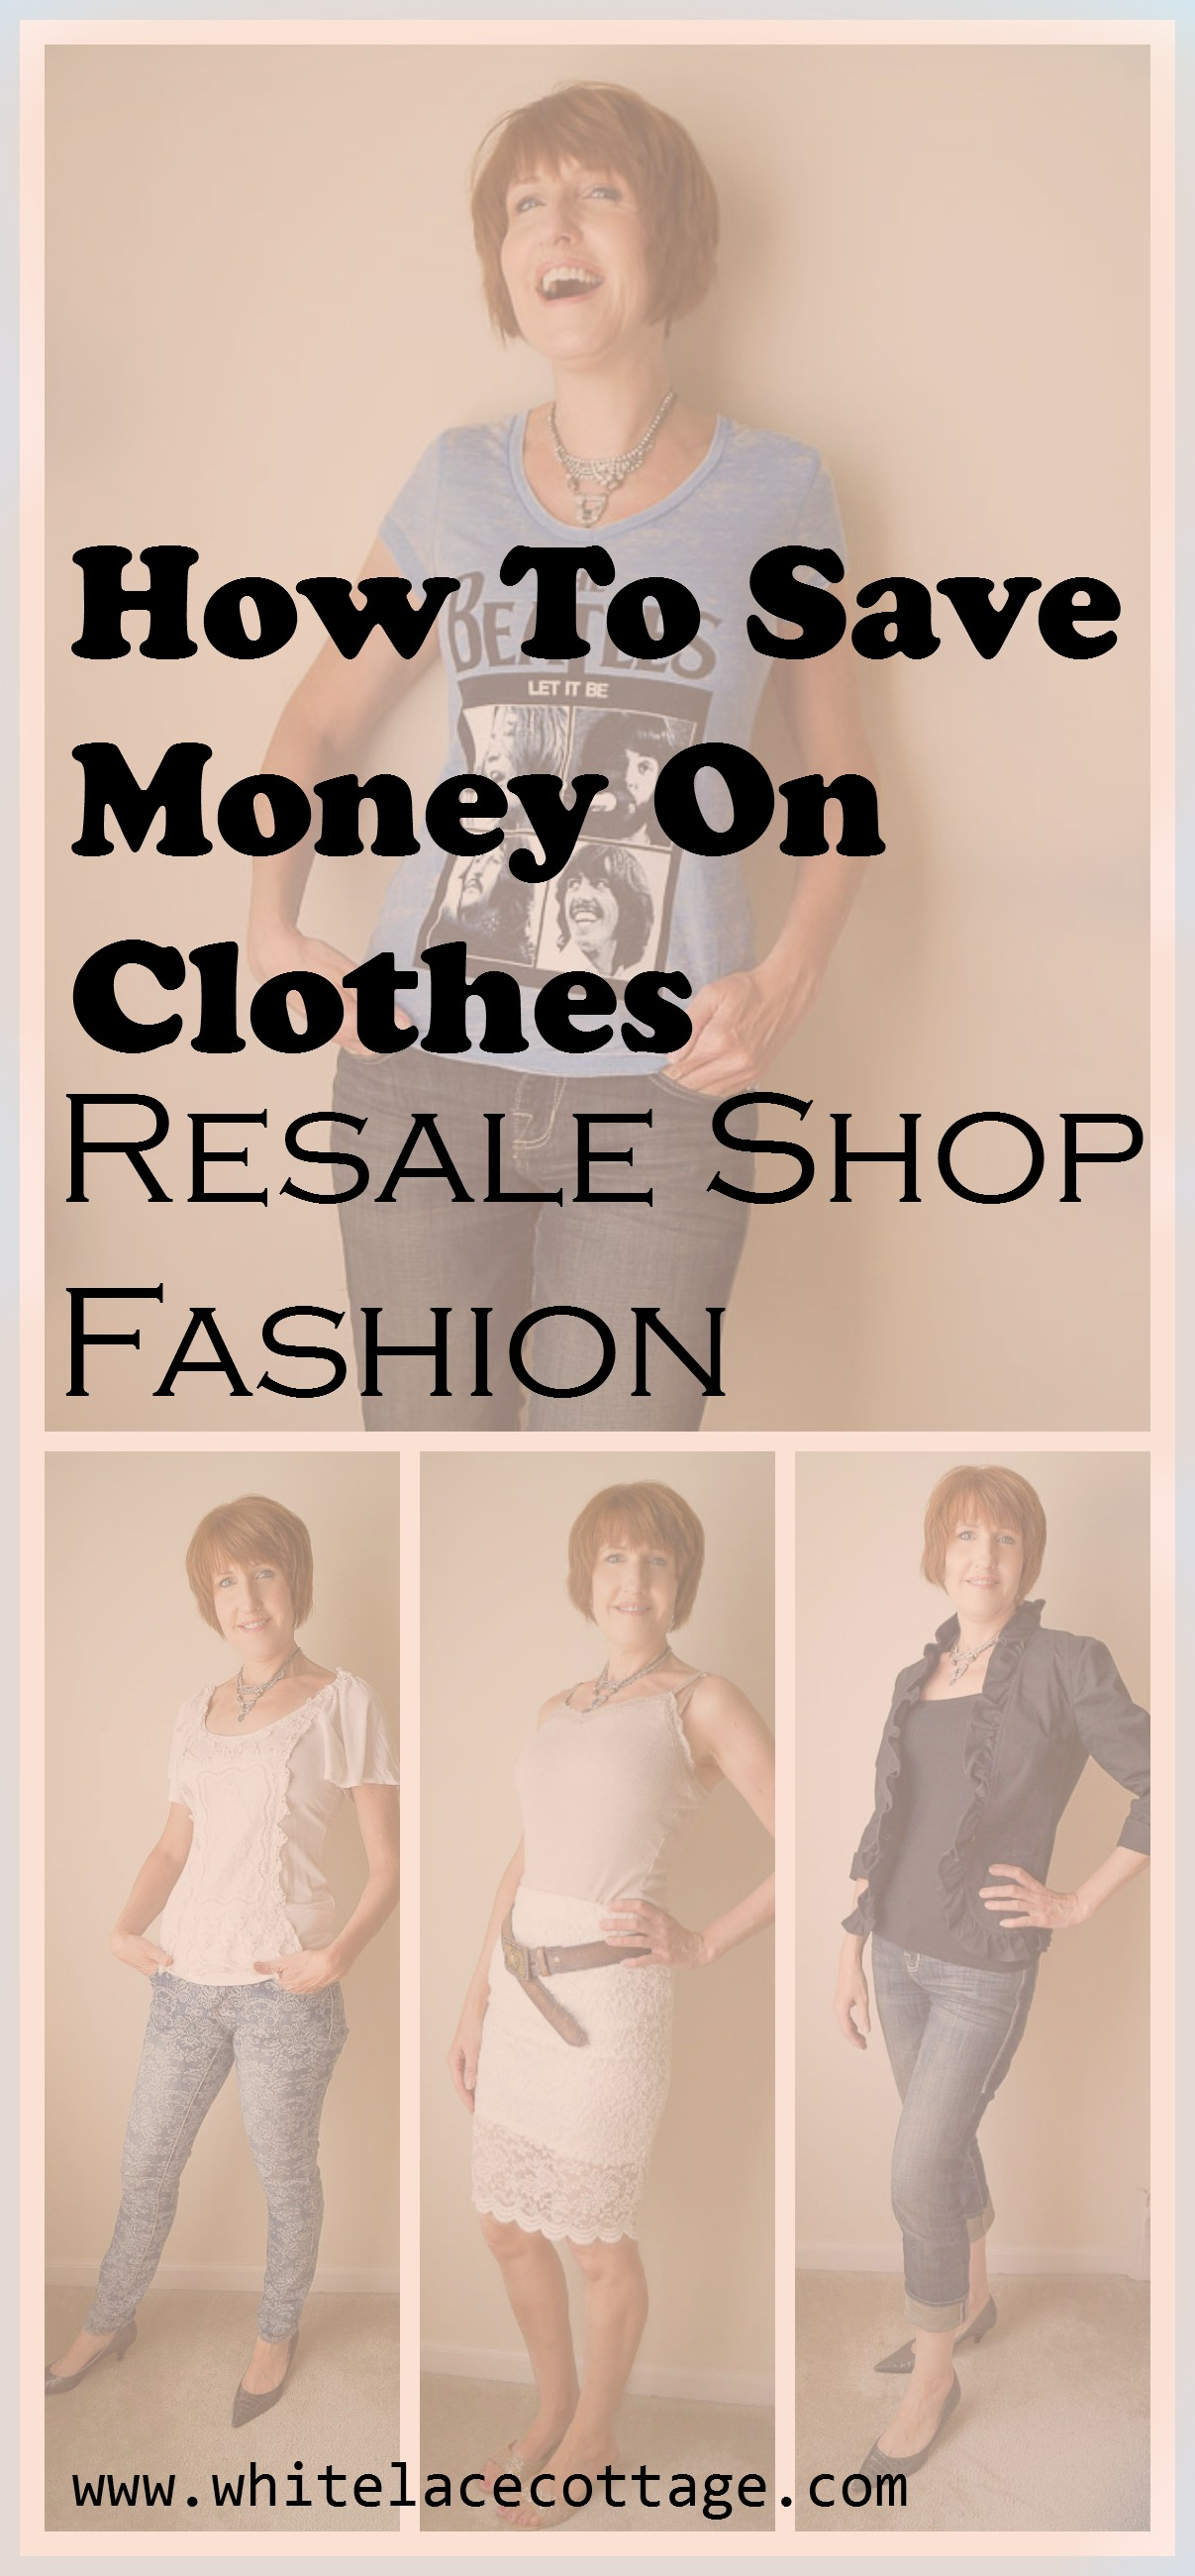 Resale Shop Fashion